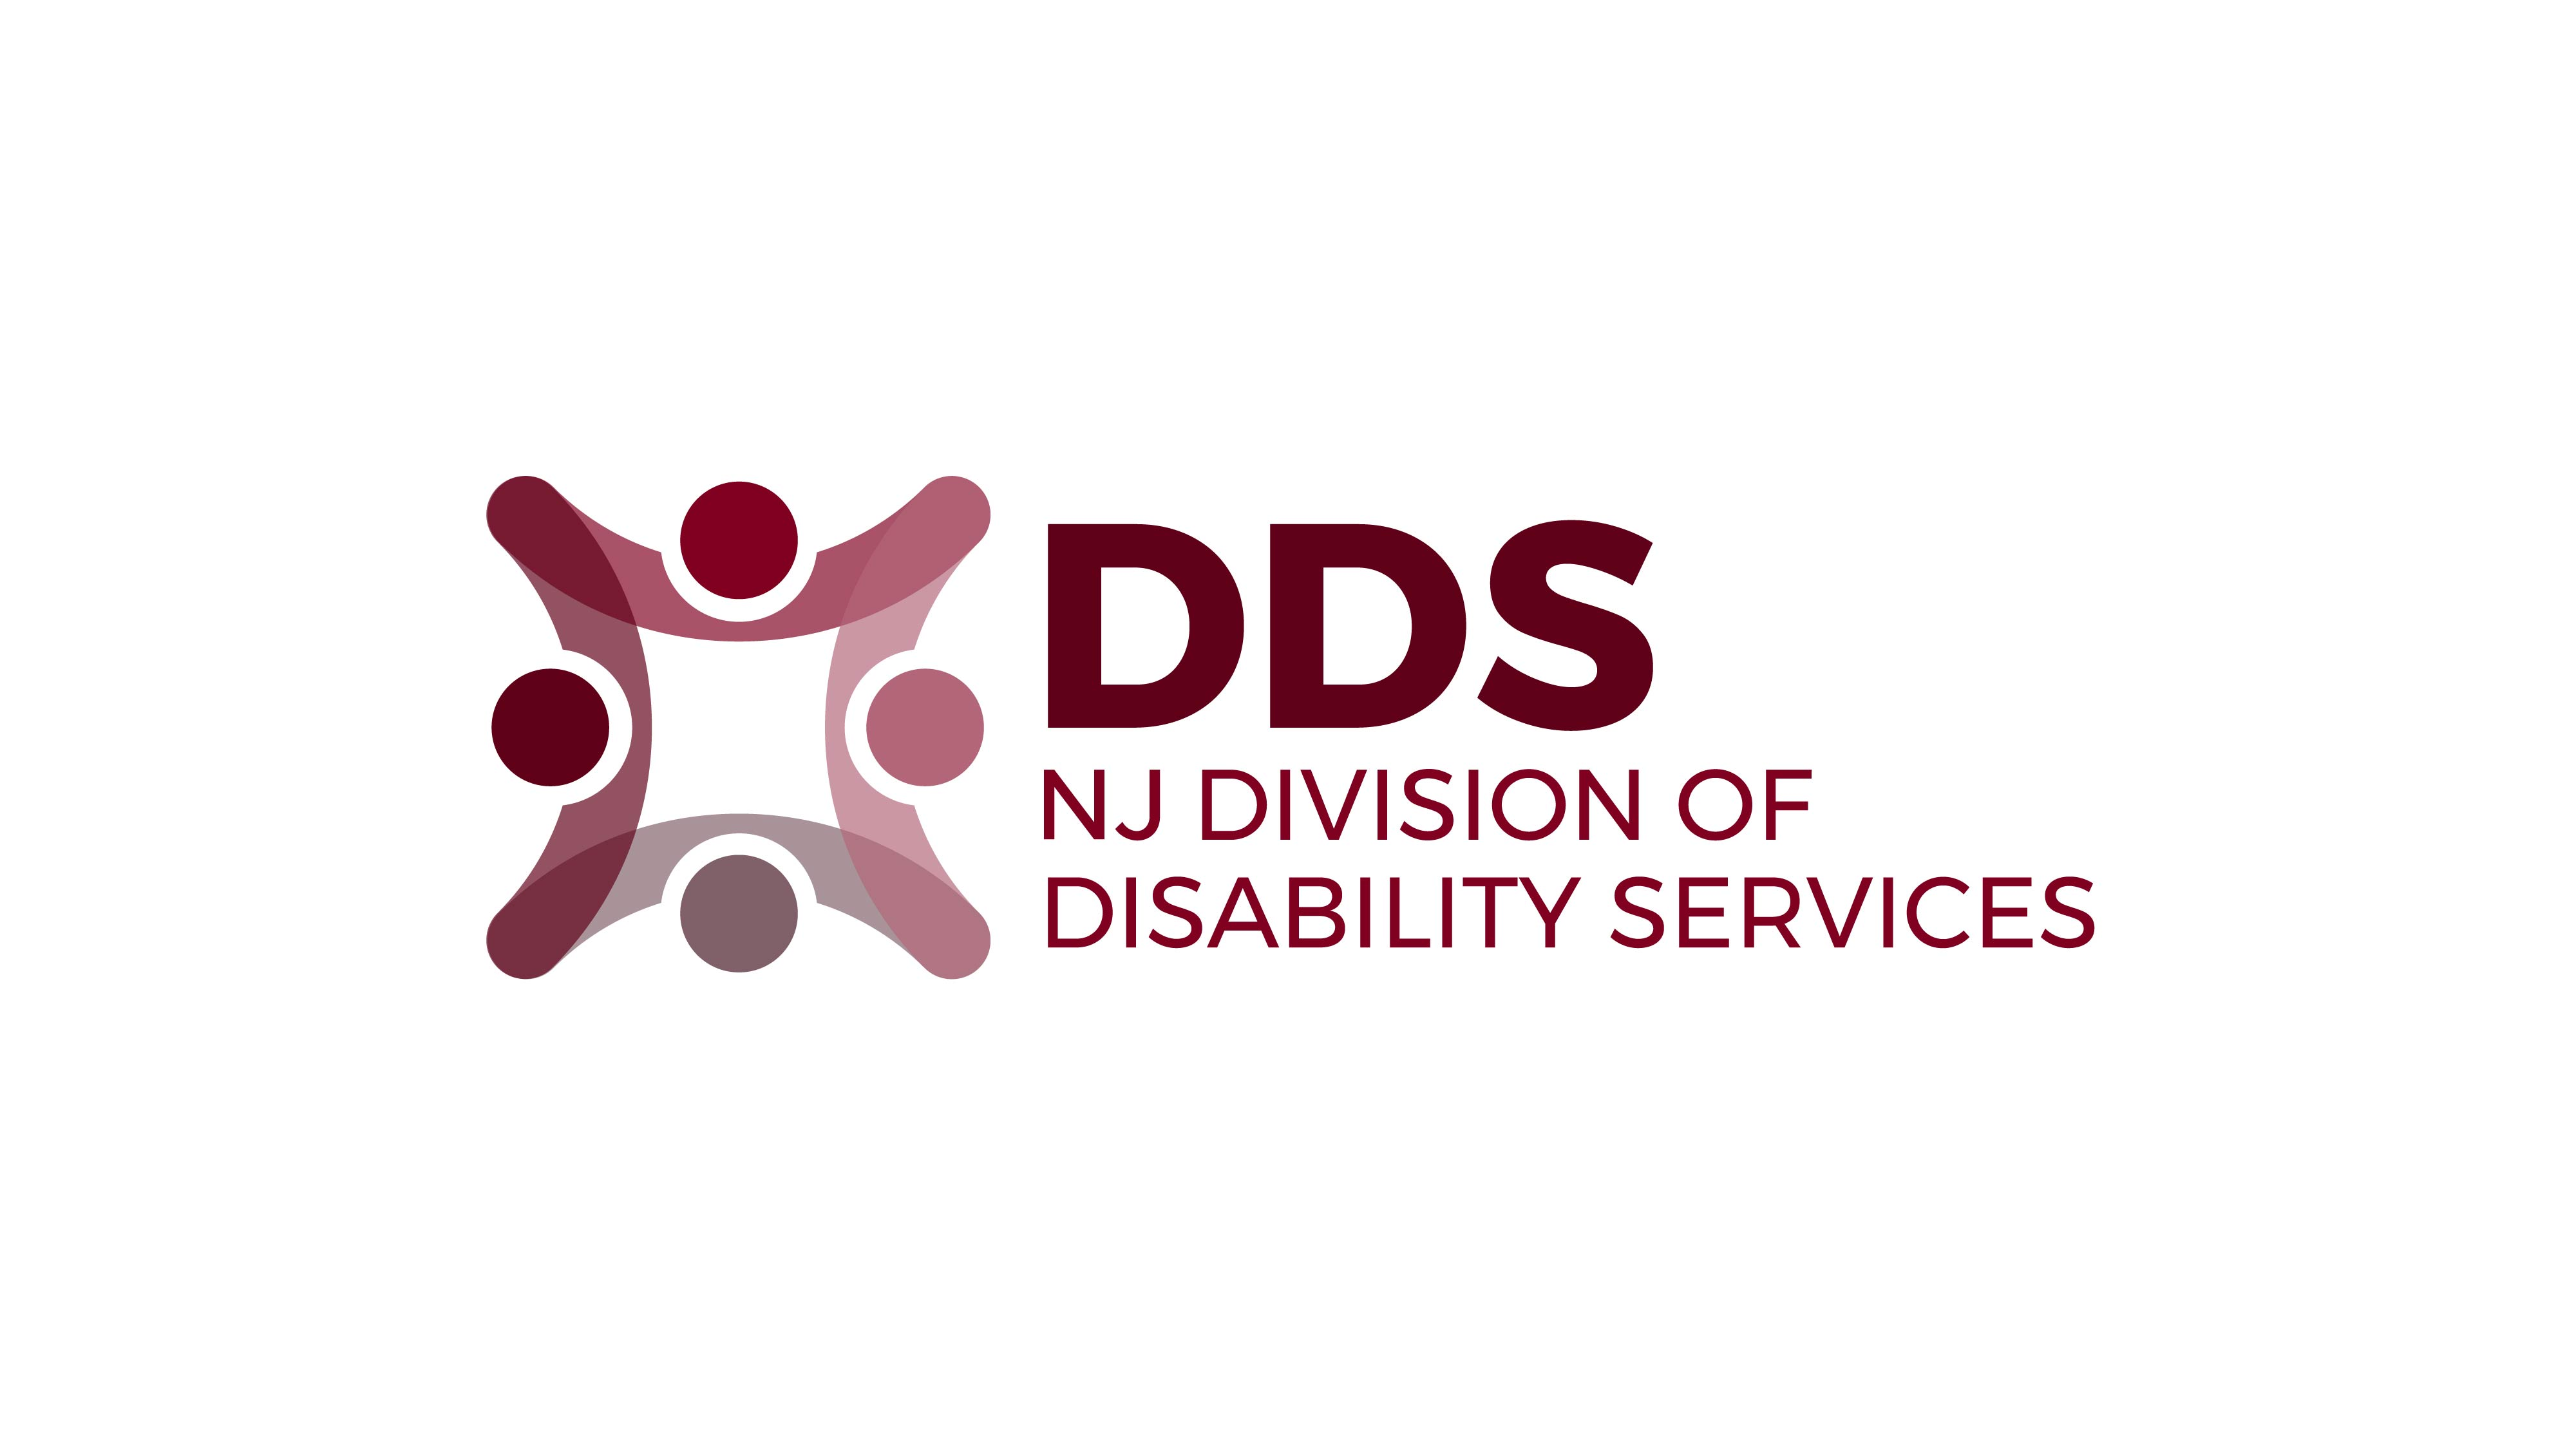 The New Jersey Division of Disability Services logo